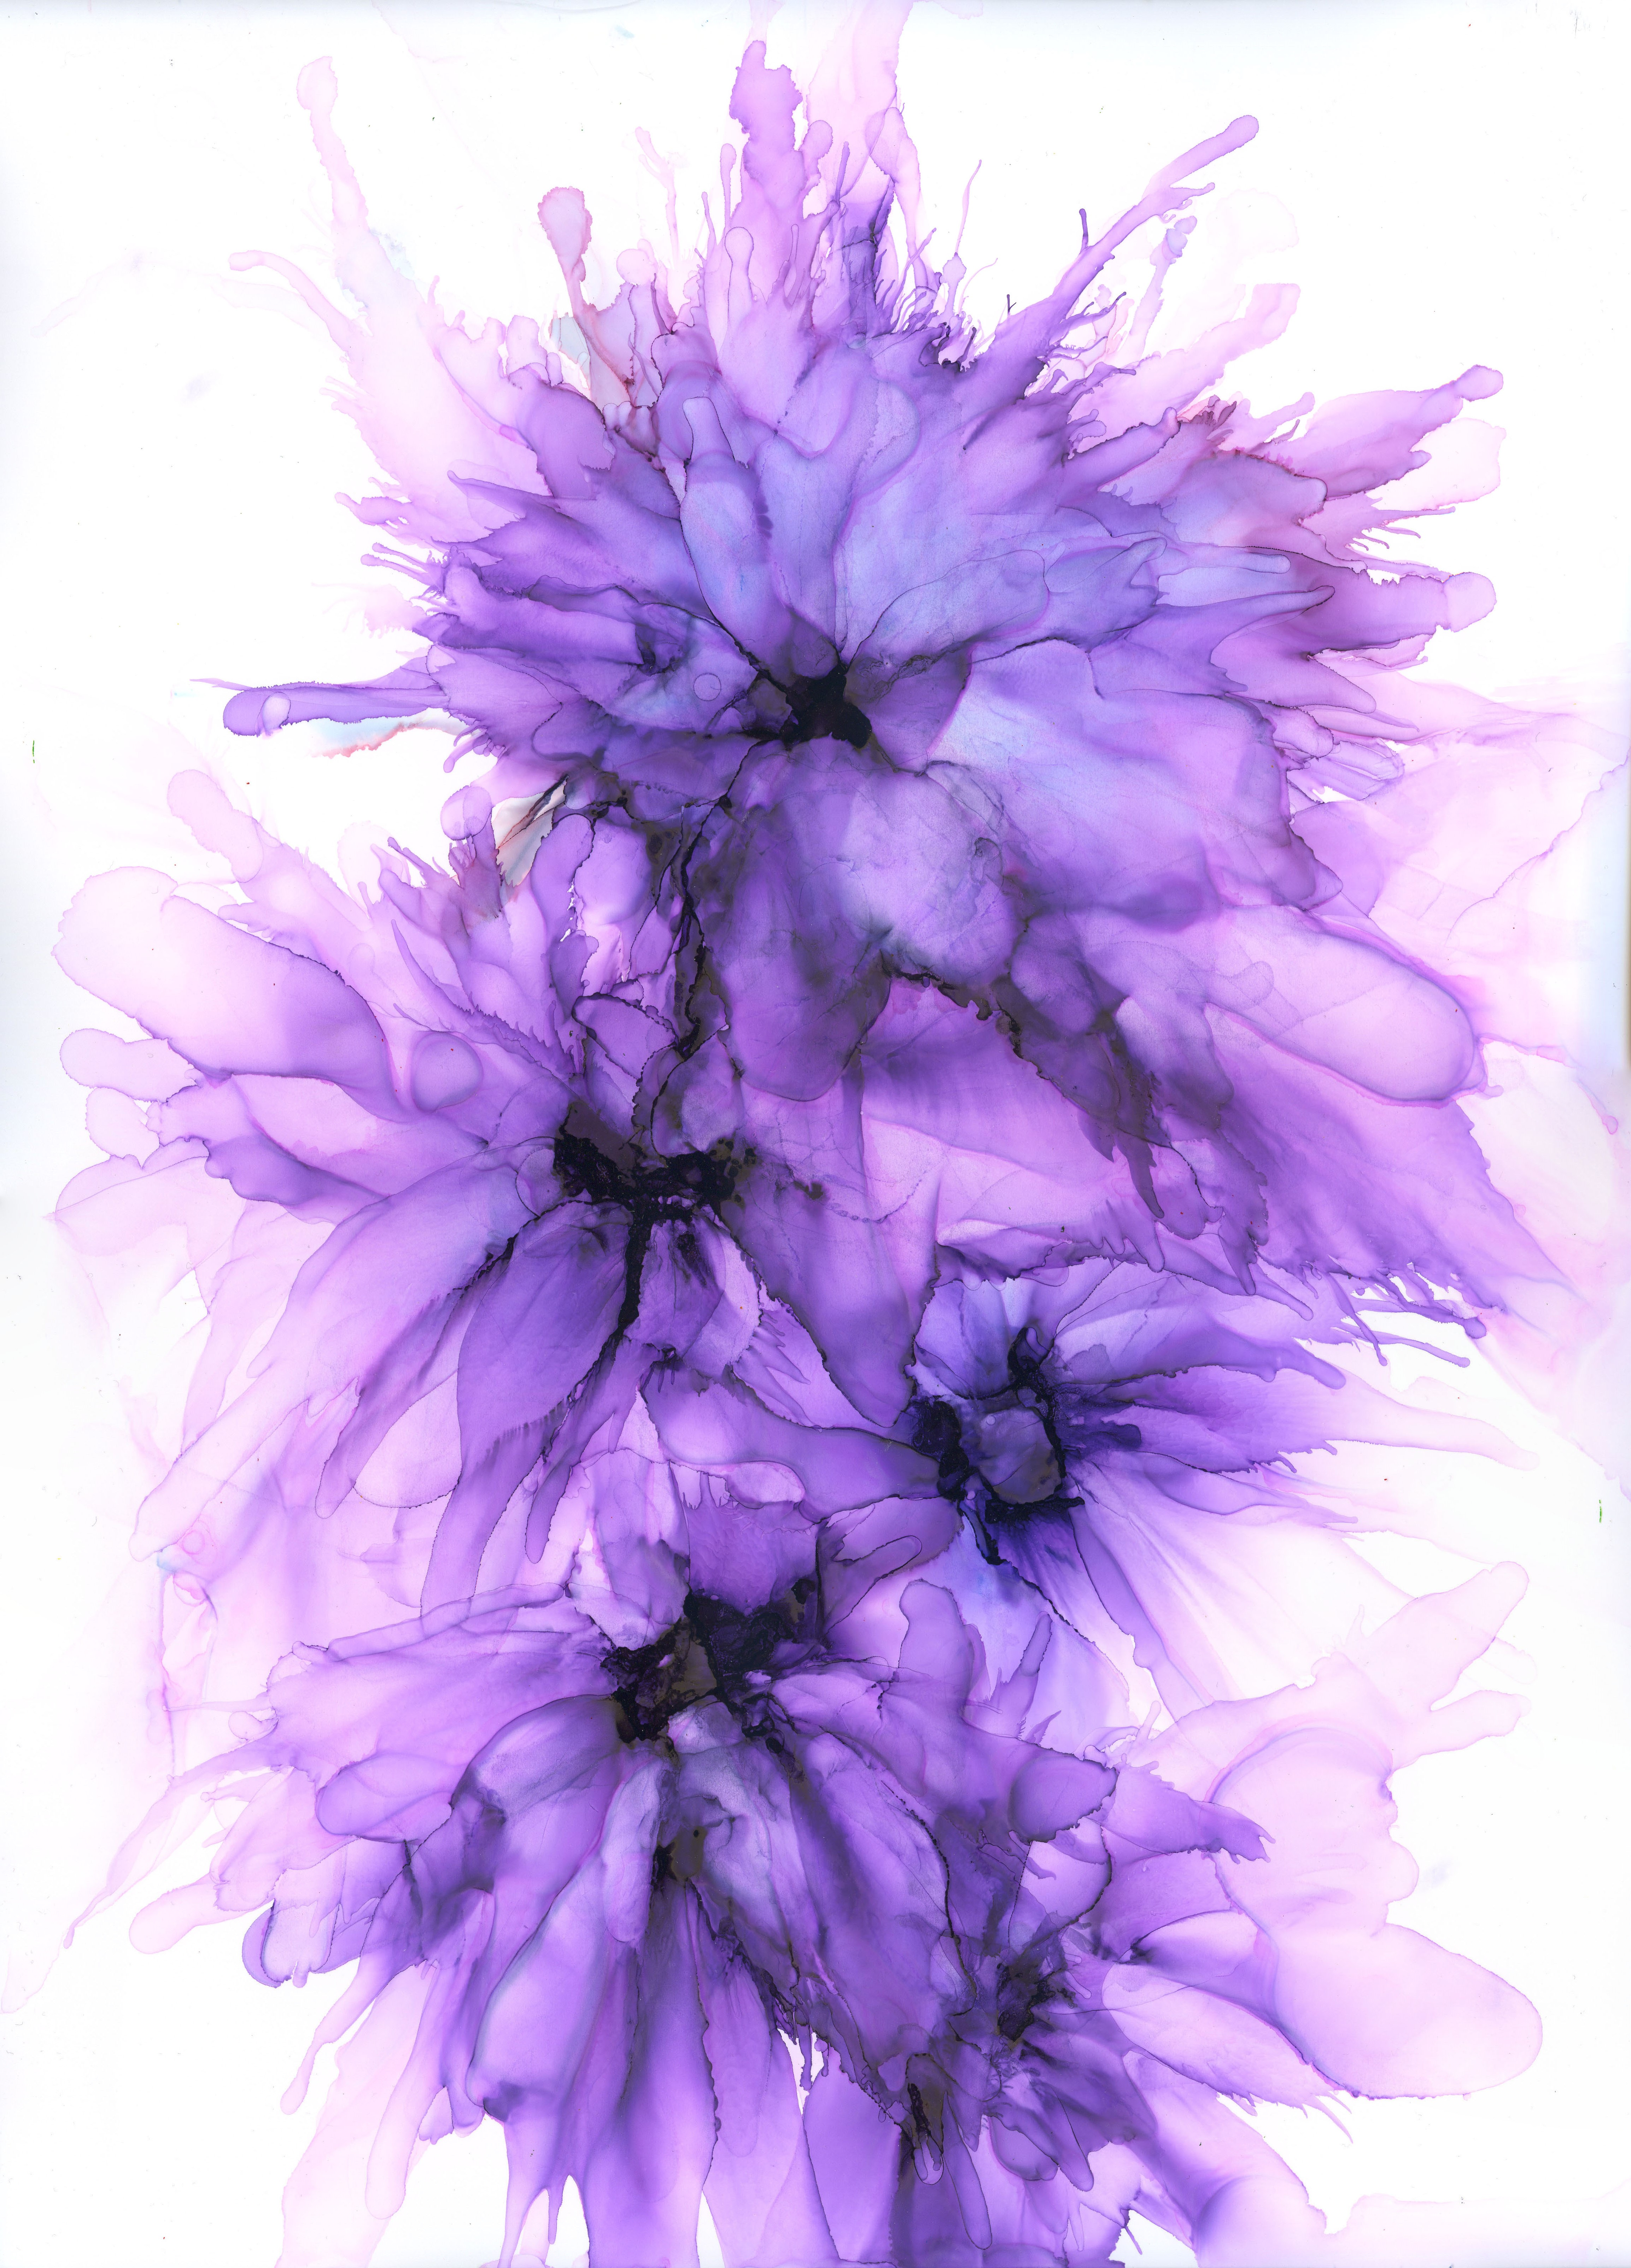 Tara's Bouquet - Alcohol Ink - 12 X 16 - Sold - Print Available